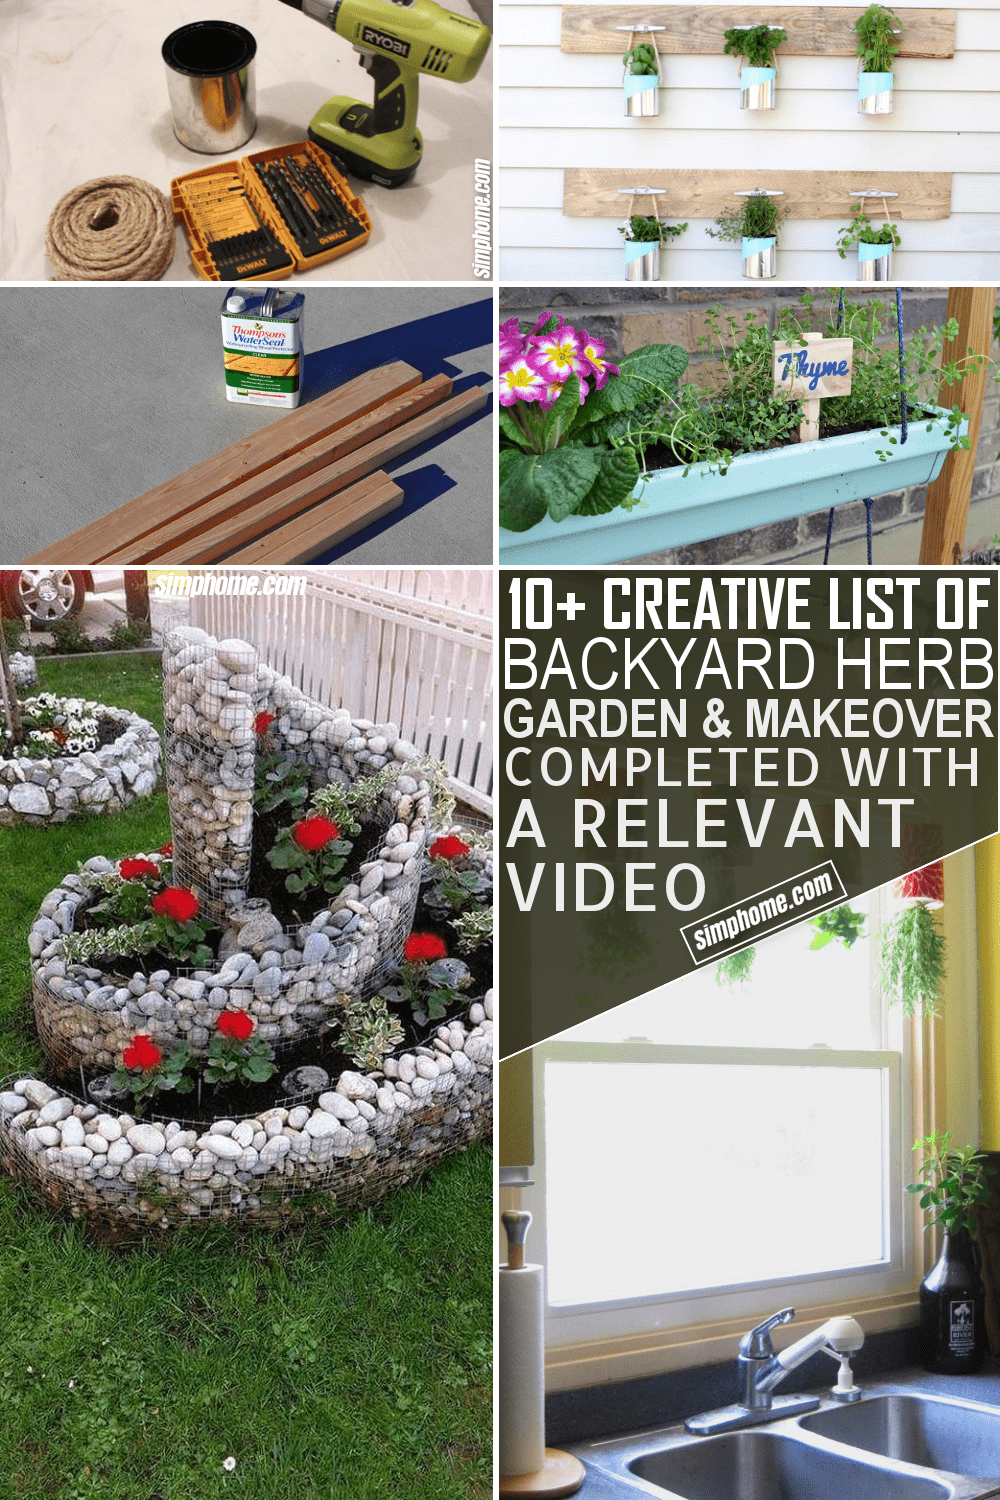 10 Backyard Herb Garden Ideas via Simphome.com Featured Image